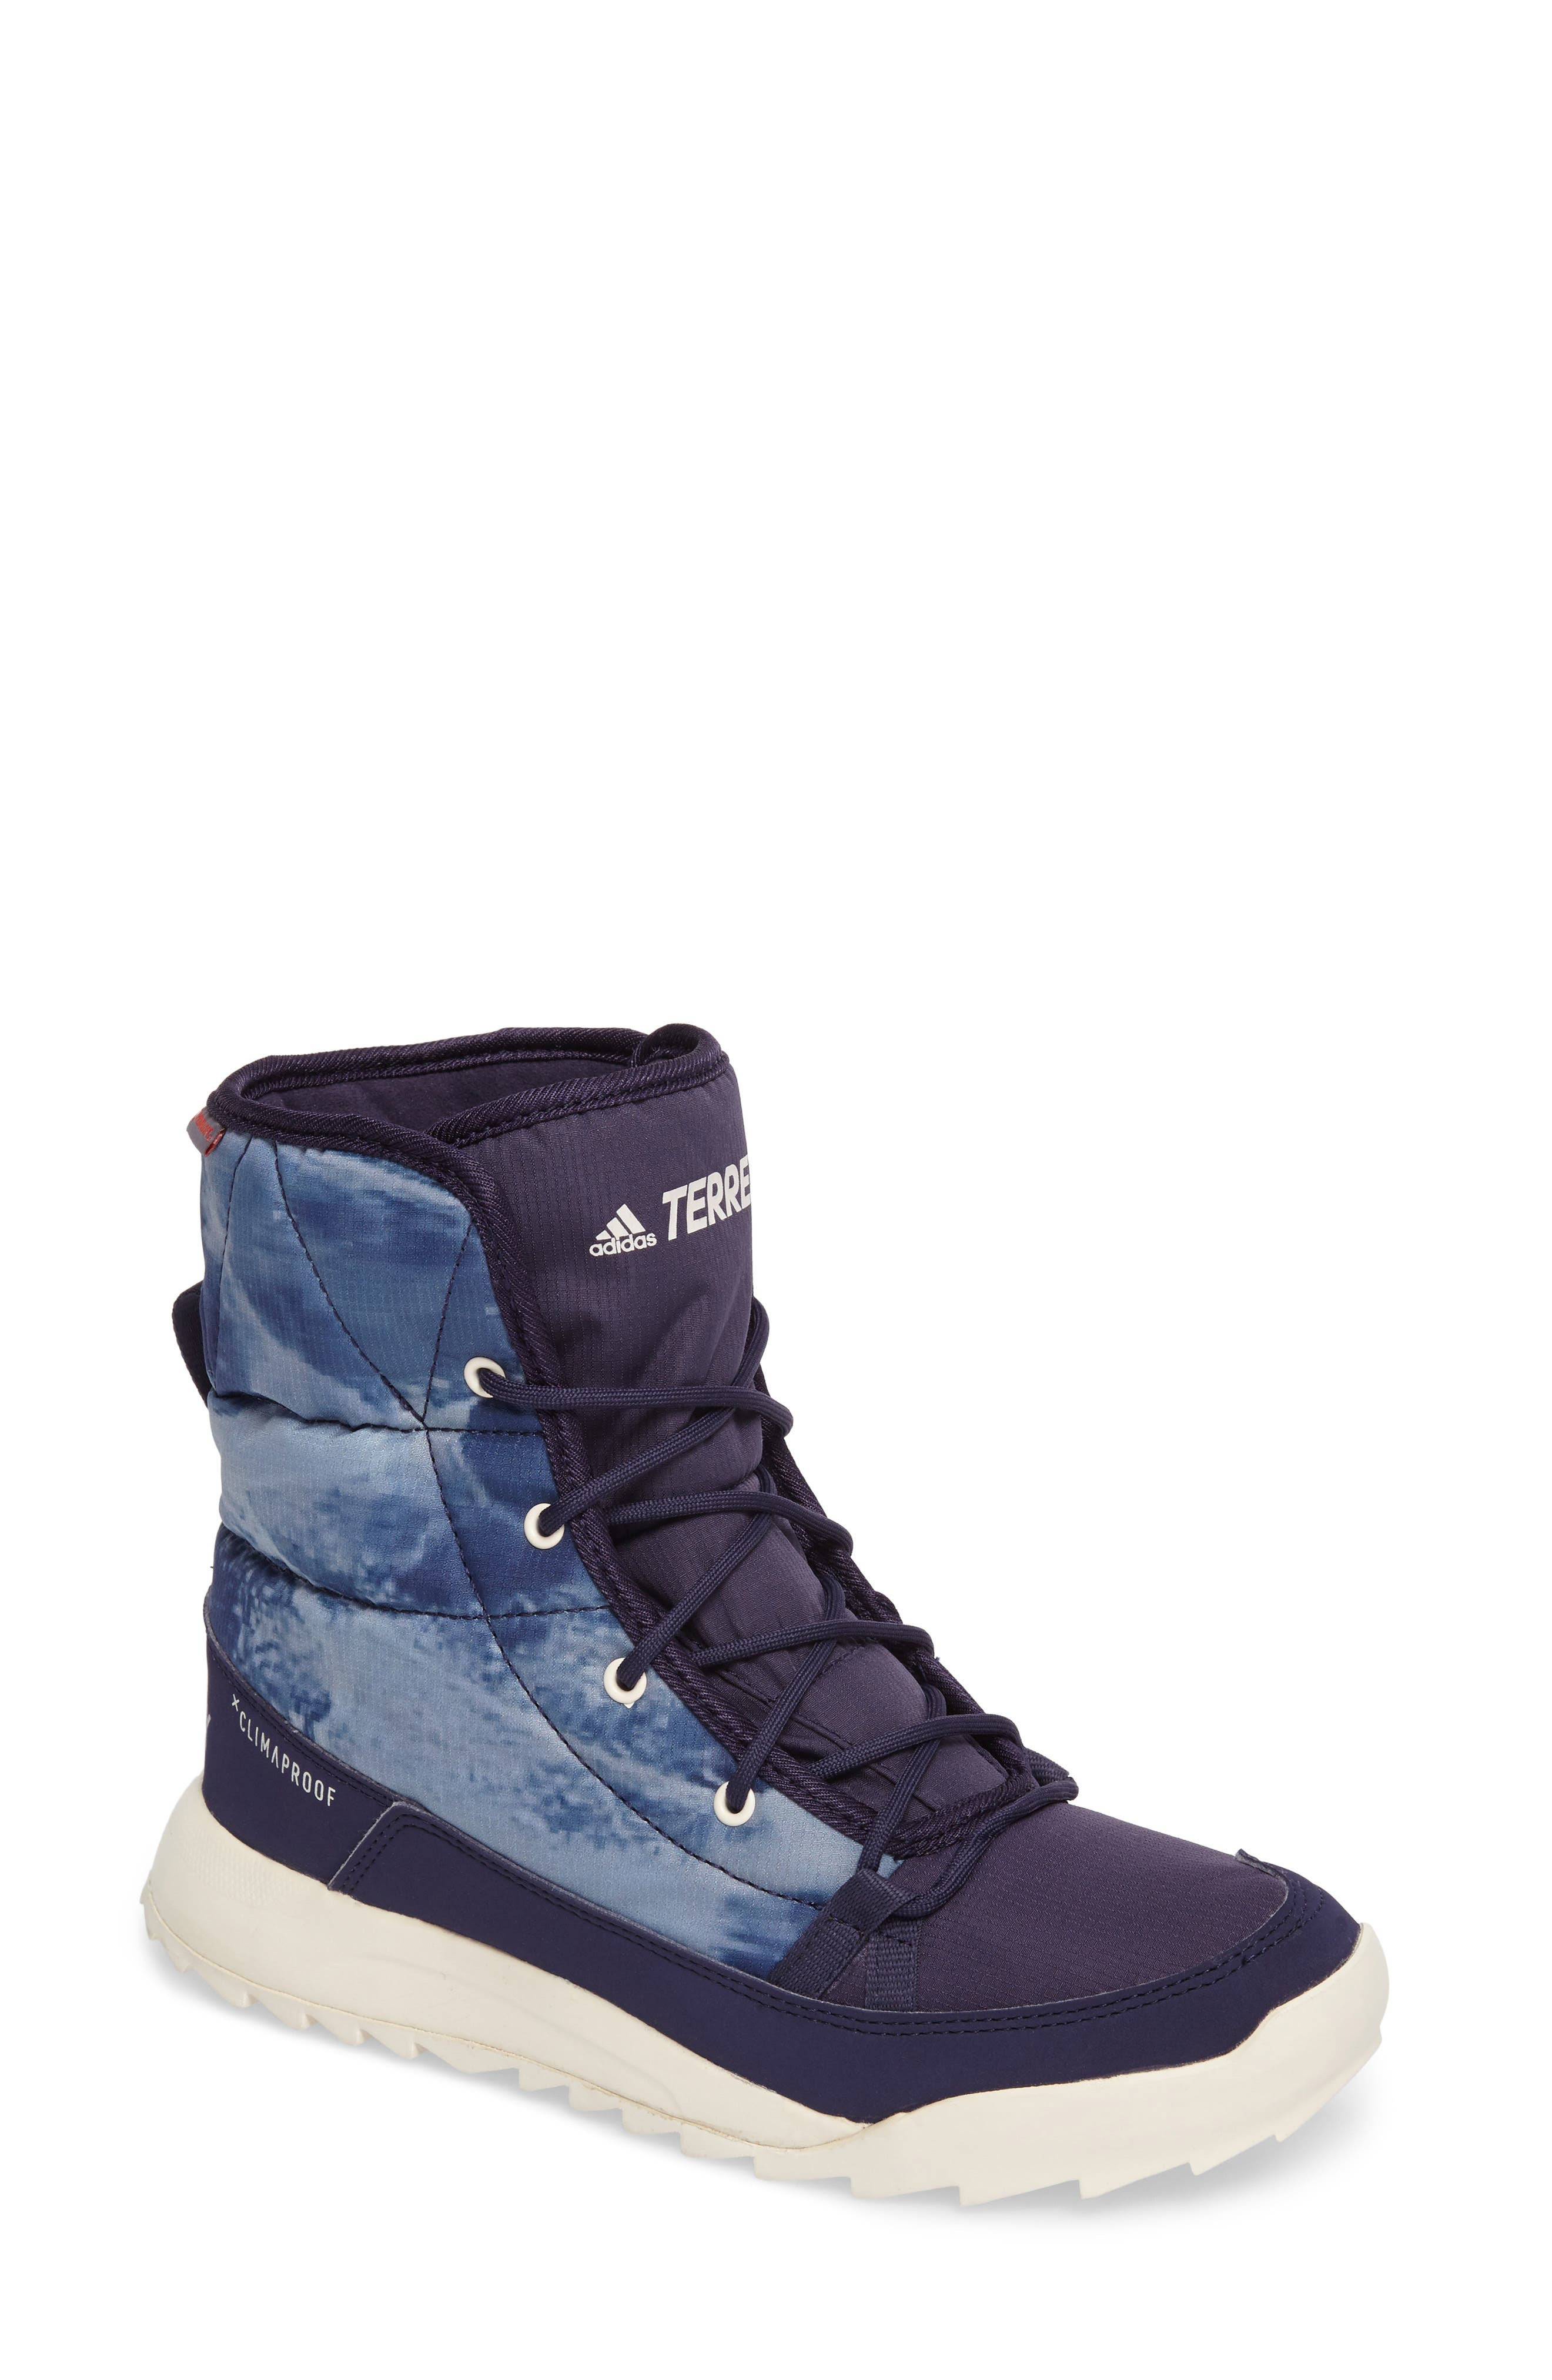 Main Image - adidas Terrex Choleah Waterproof Boot (Women)